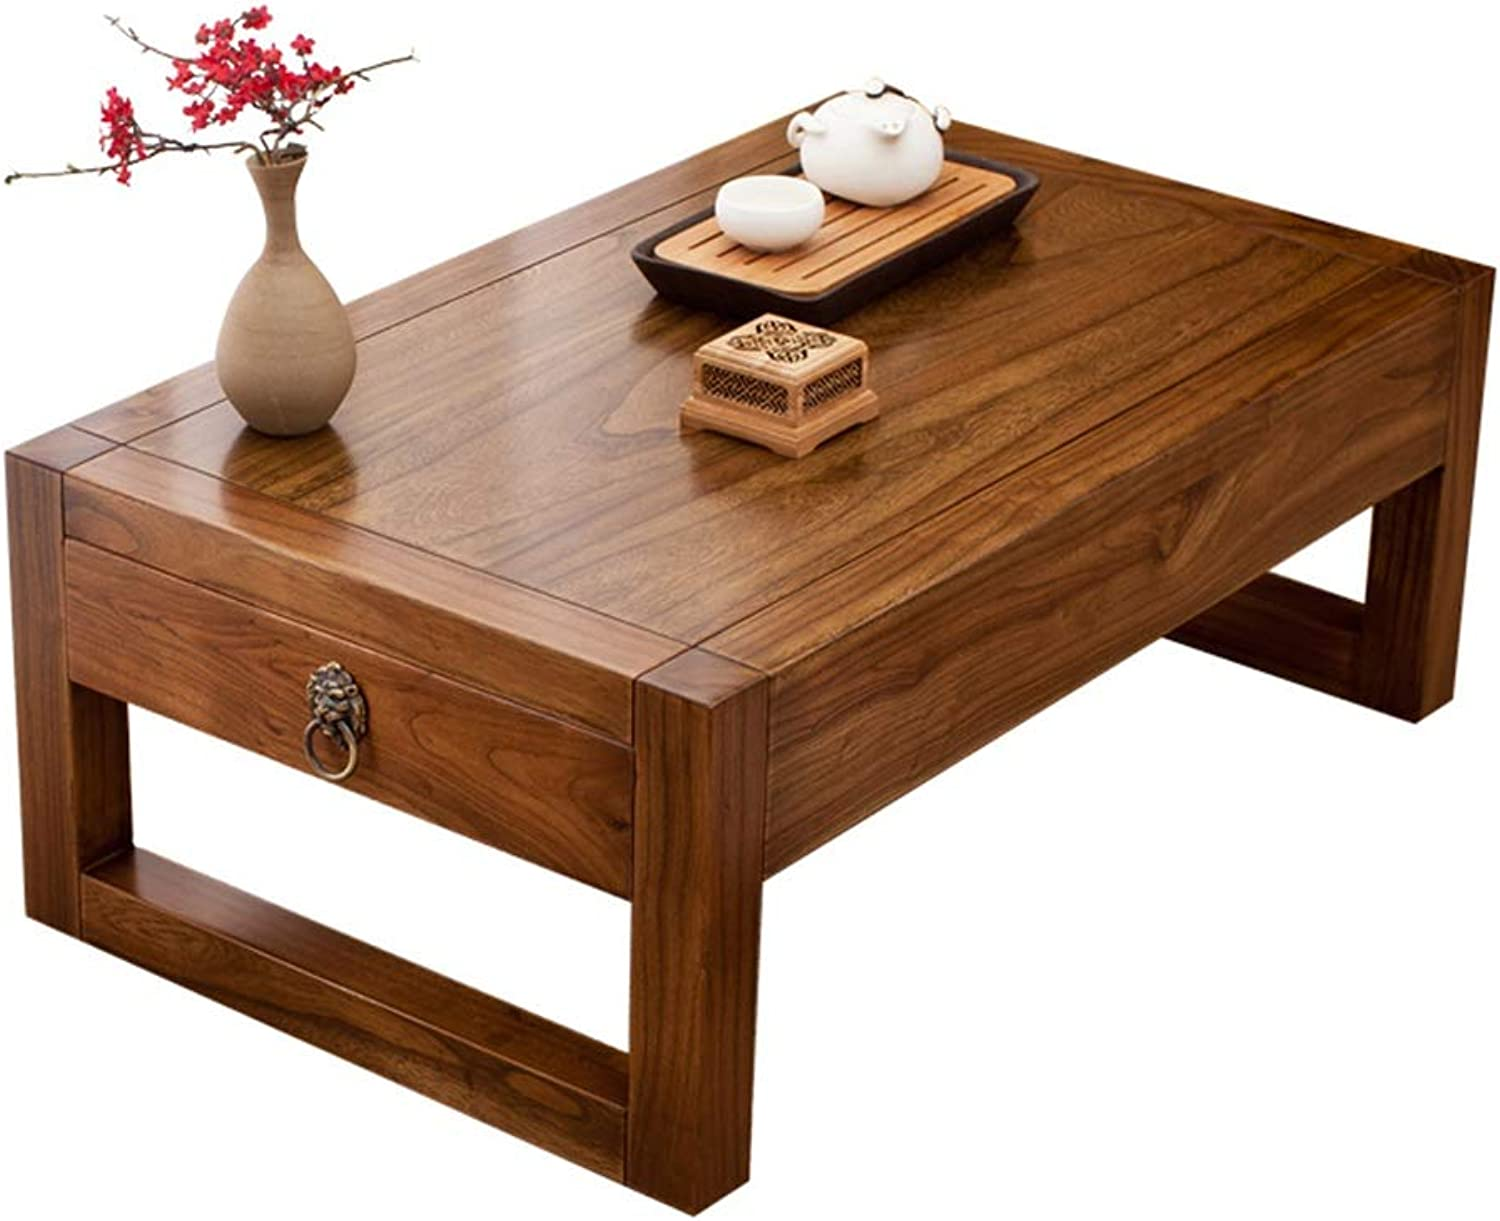 End Tables Table Tatami Coffee Table Bed Table Home Solid Wood Bay Window Table Low Table Balcony Small Coffee Table with Drawers Low Table Best Gift End Tables (color   B, Size   50  40  30CM)